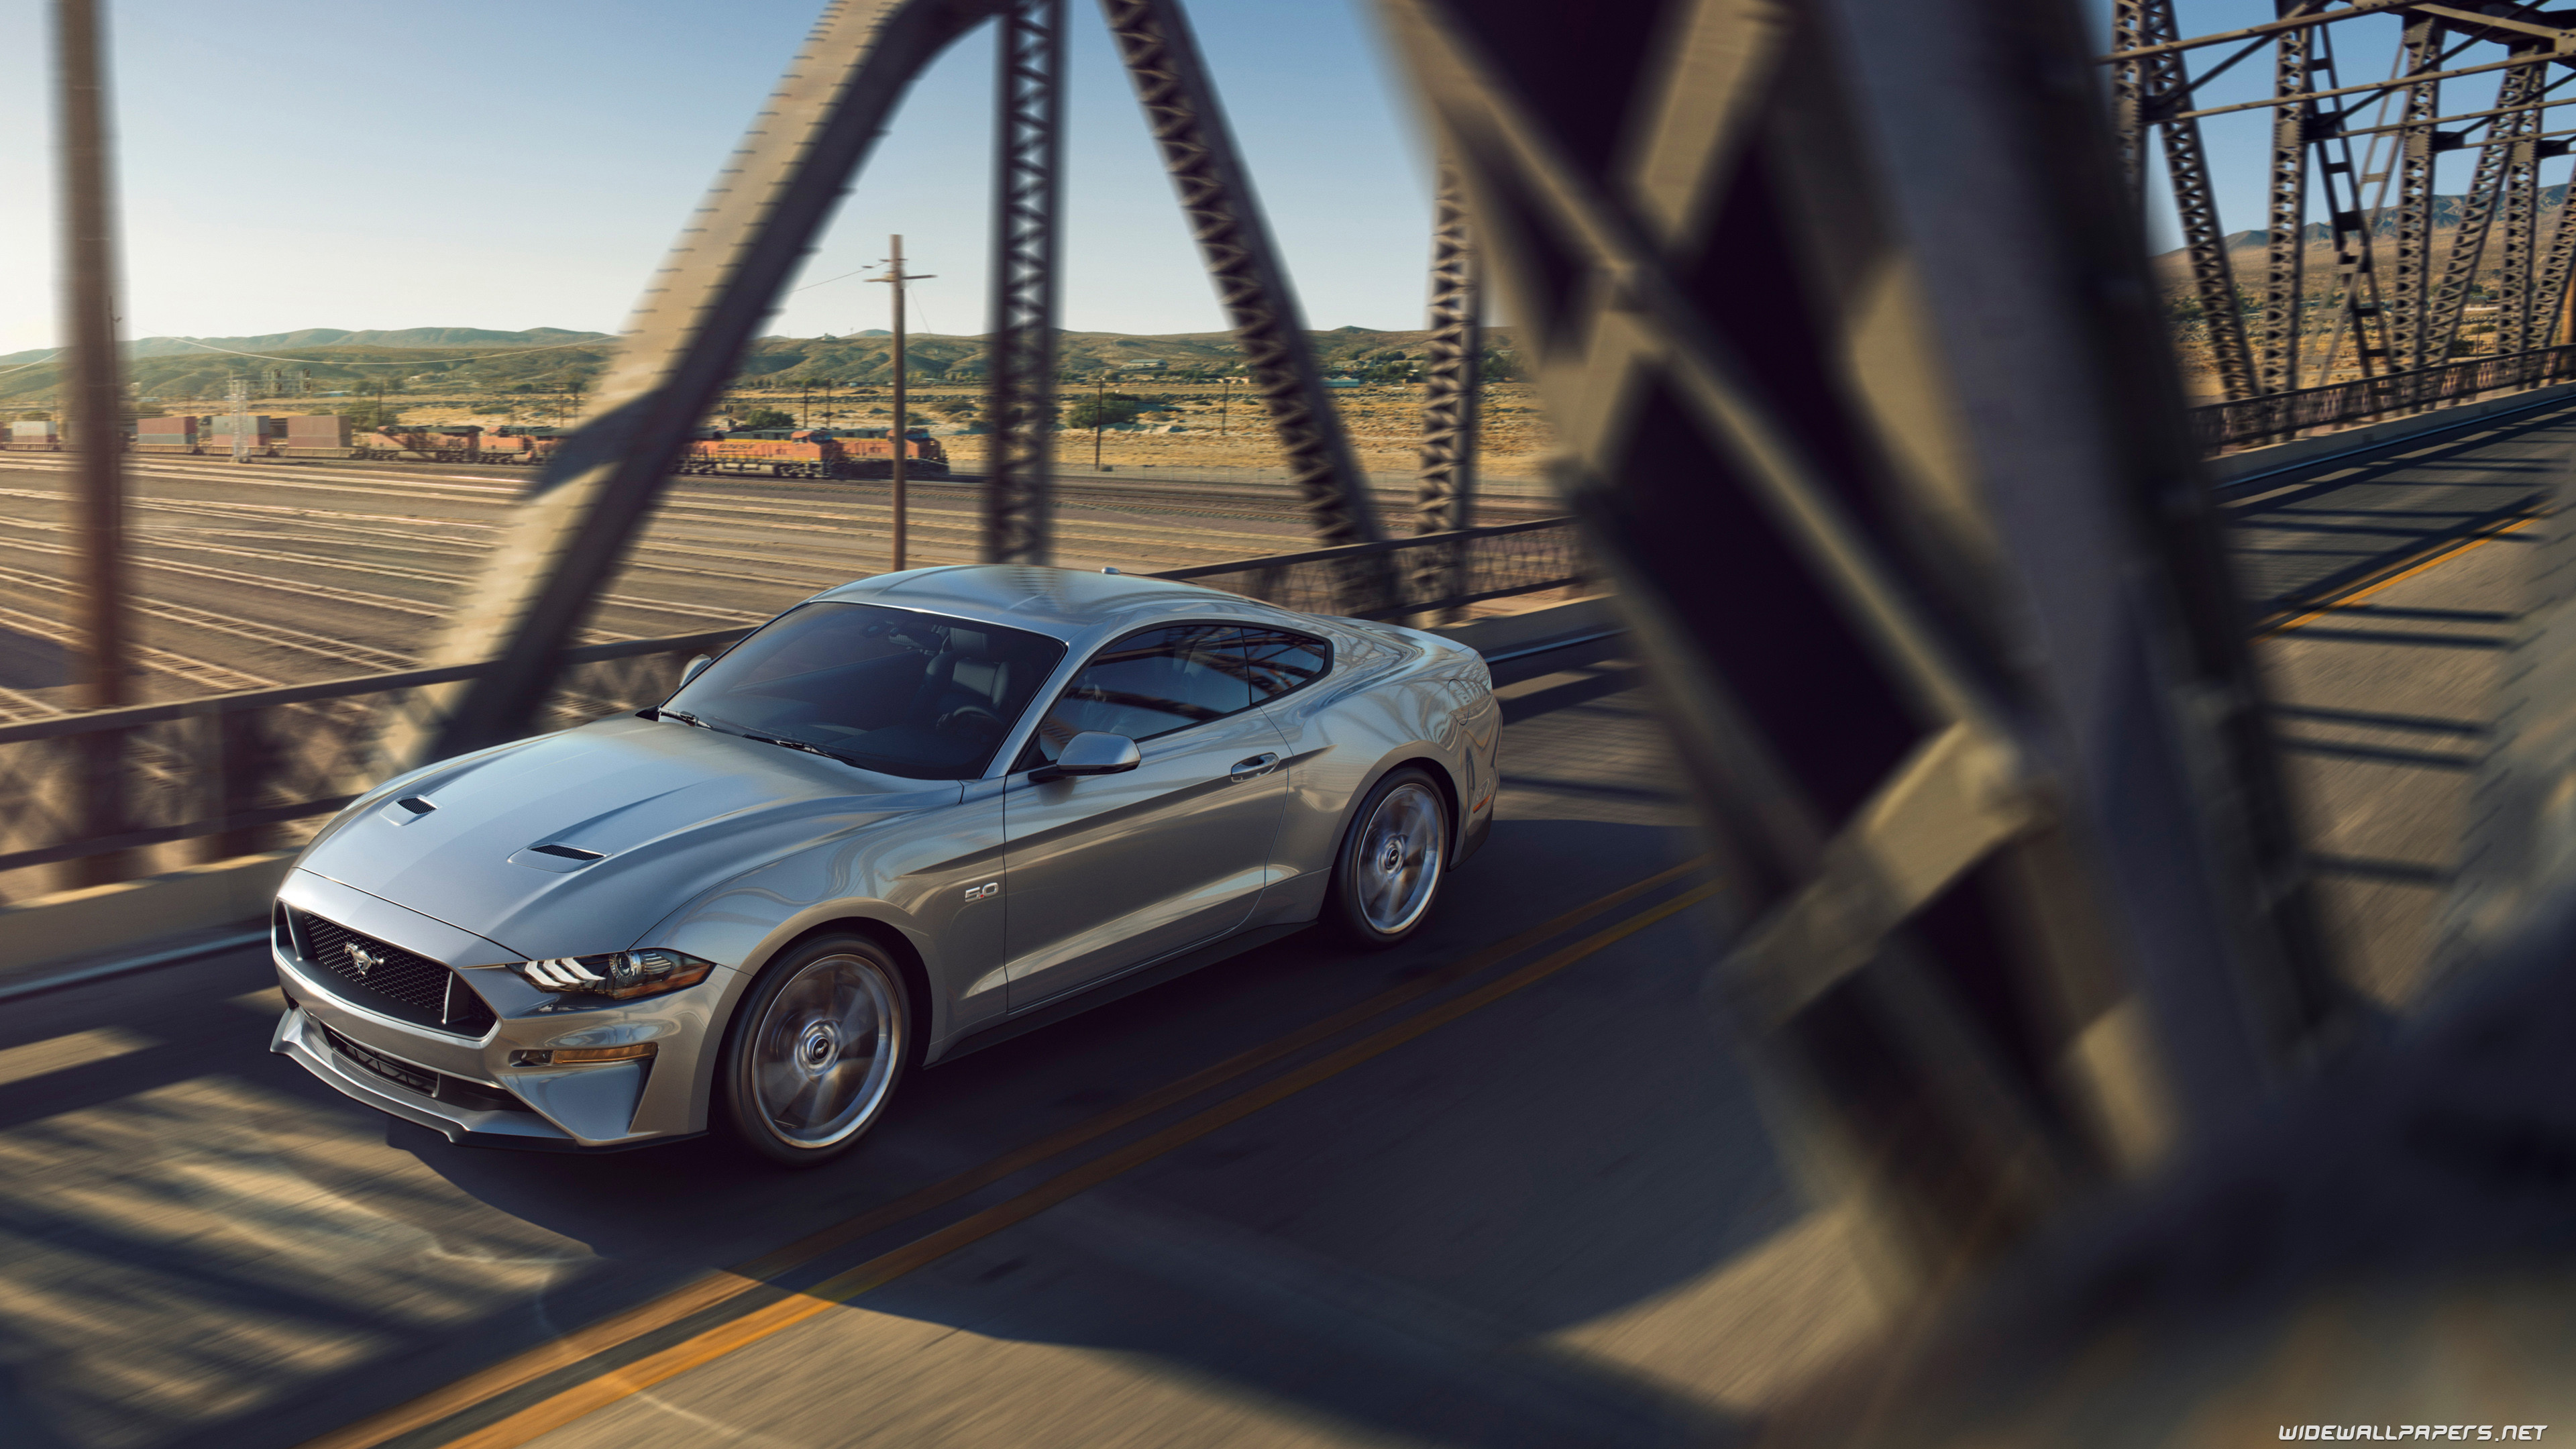 Res: 3840x2160, Ford Mustang GT Performance Package car wallpapers 4K ...